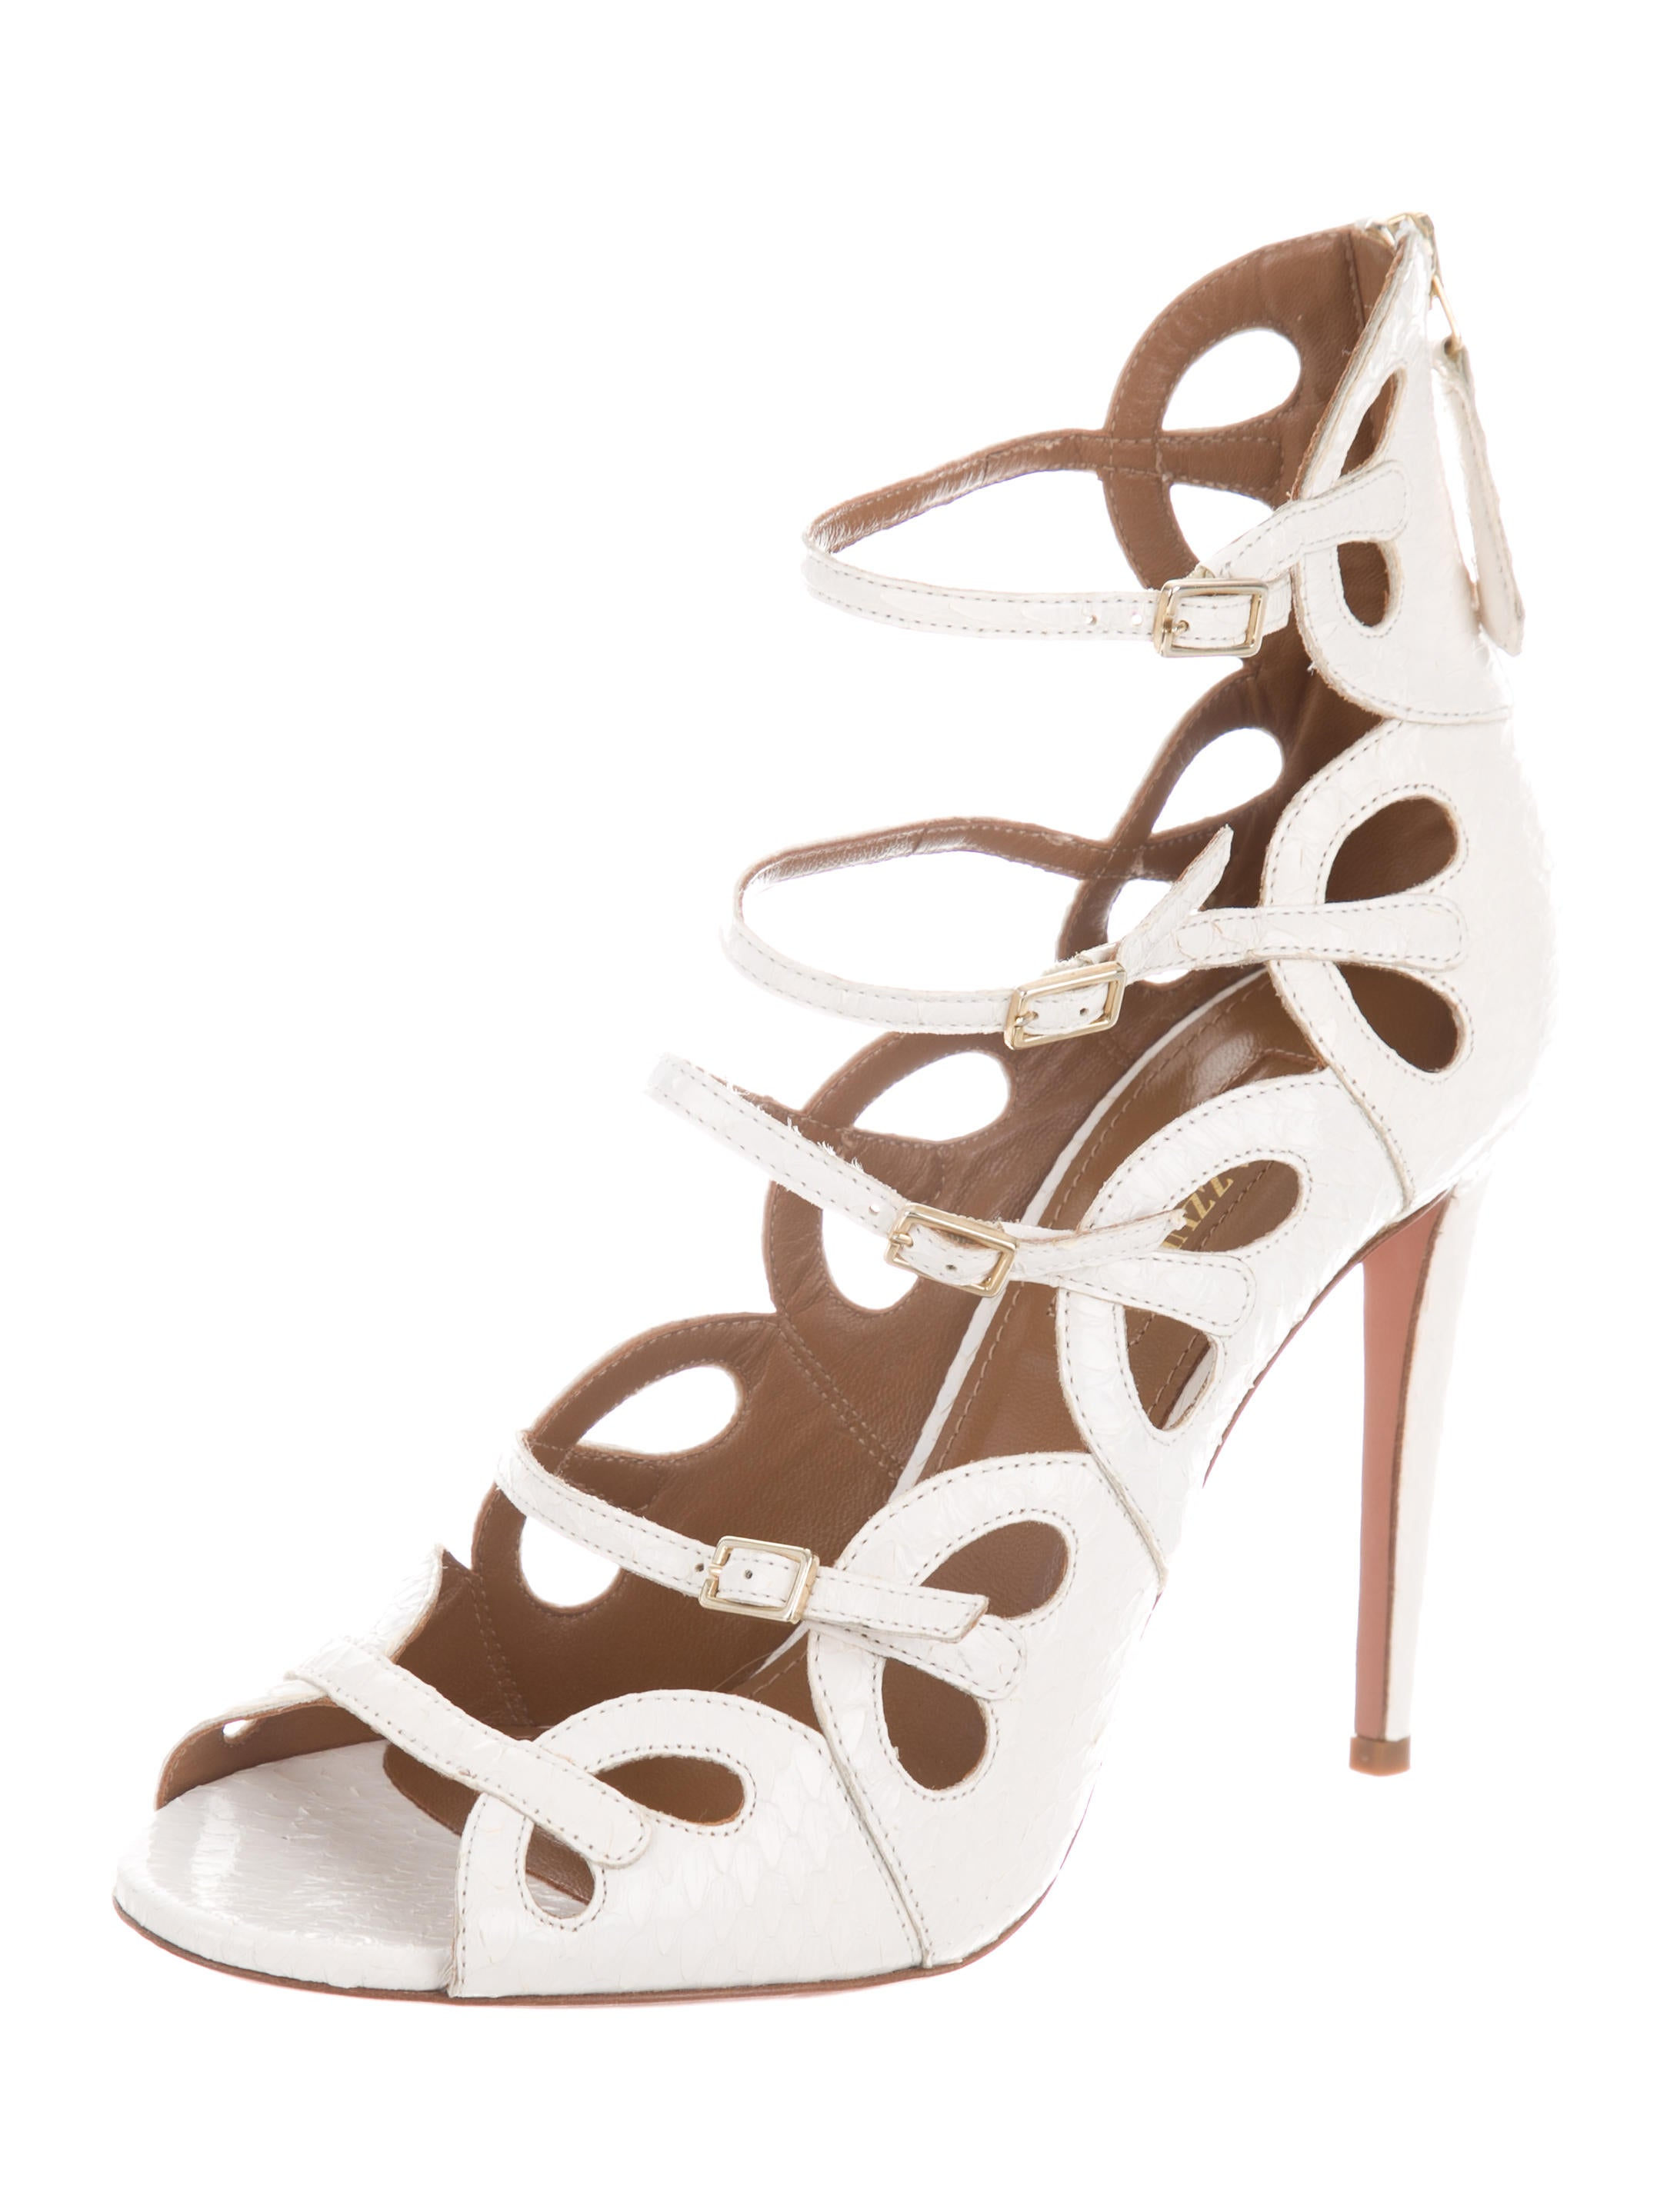 Aquazzura Python Caged Pumps many kinds of sale online cheap discount sale outlet Inexpensive free shipping outlet outlet latest collections BtqrS37